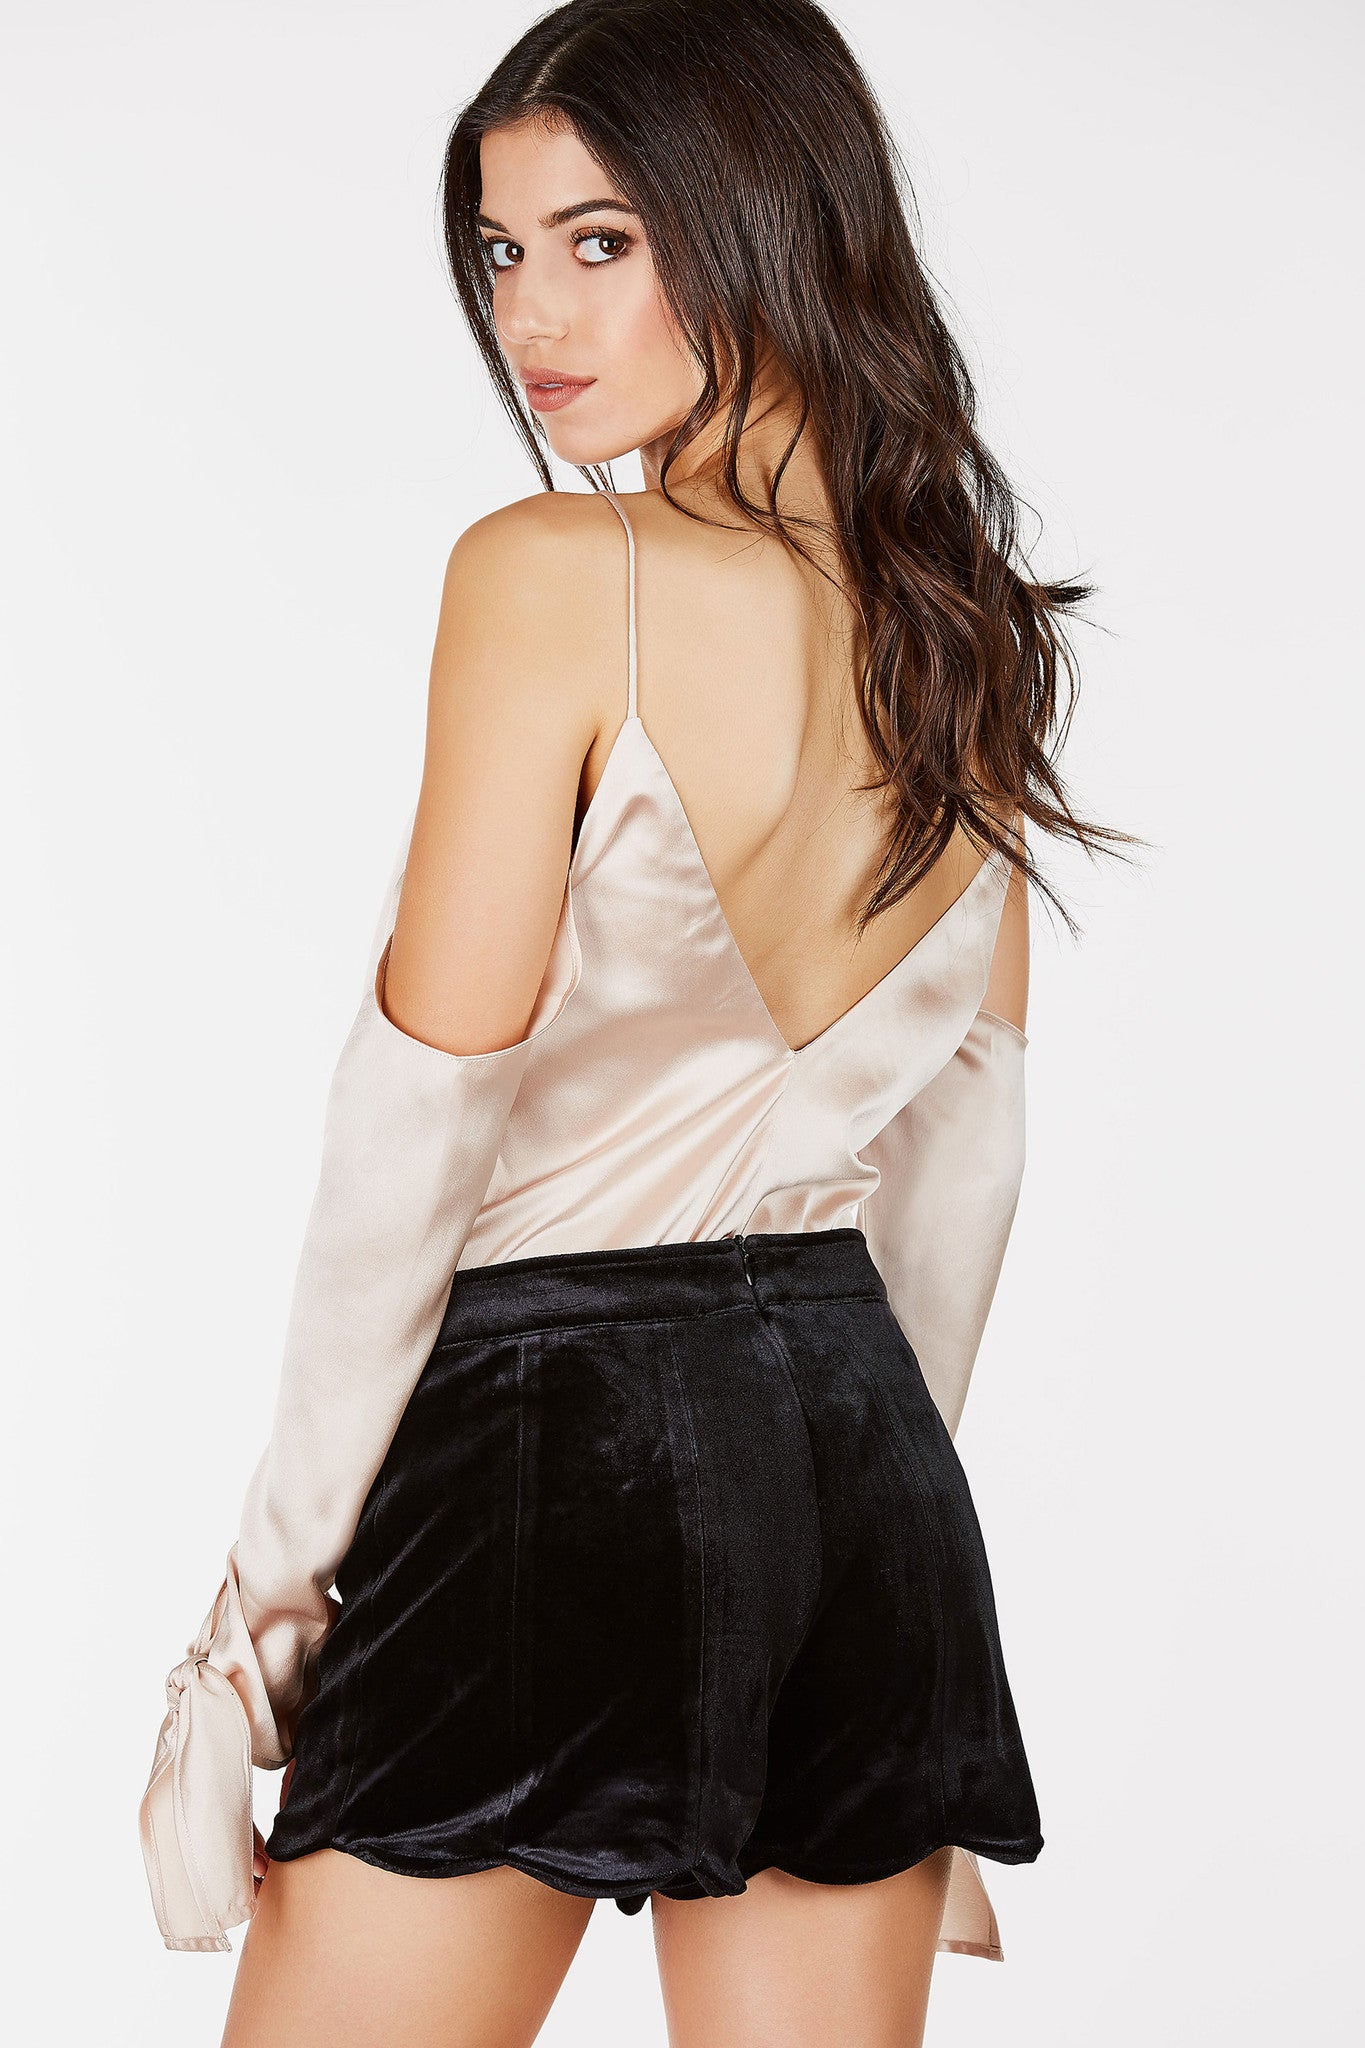 Silky, long sleeved top with cold shoulder and wrist ties.  Pair with jeans for a casual date night outfit.